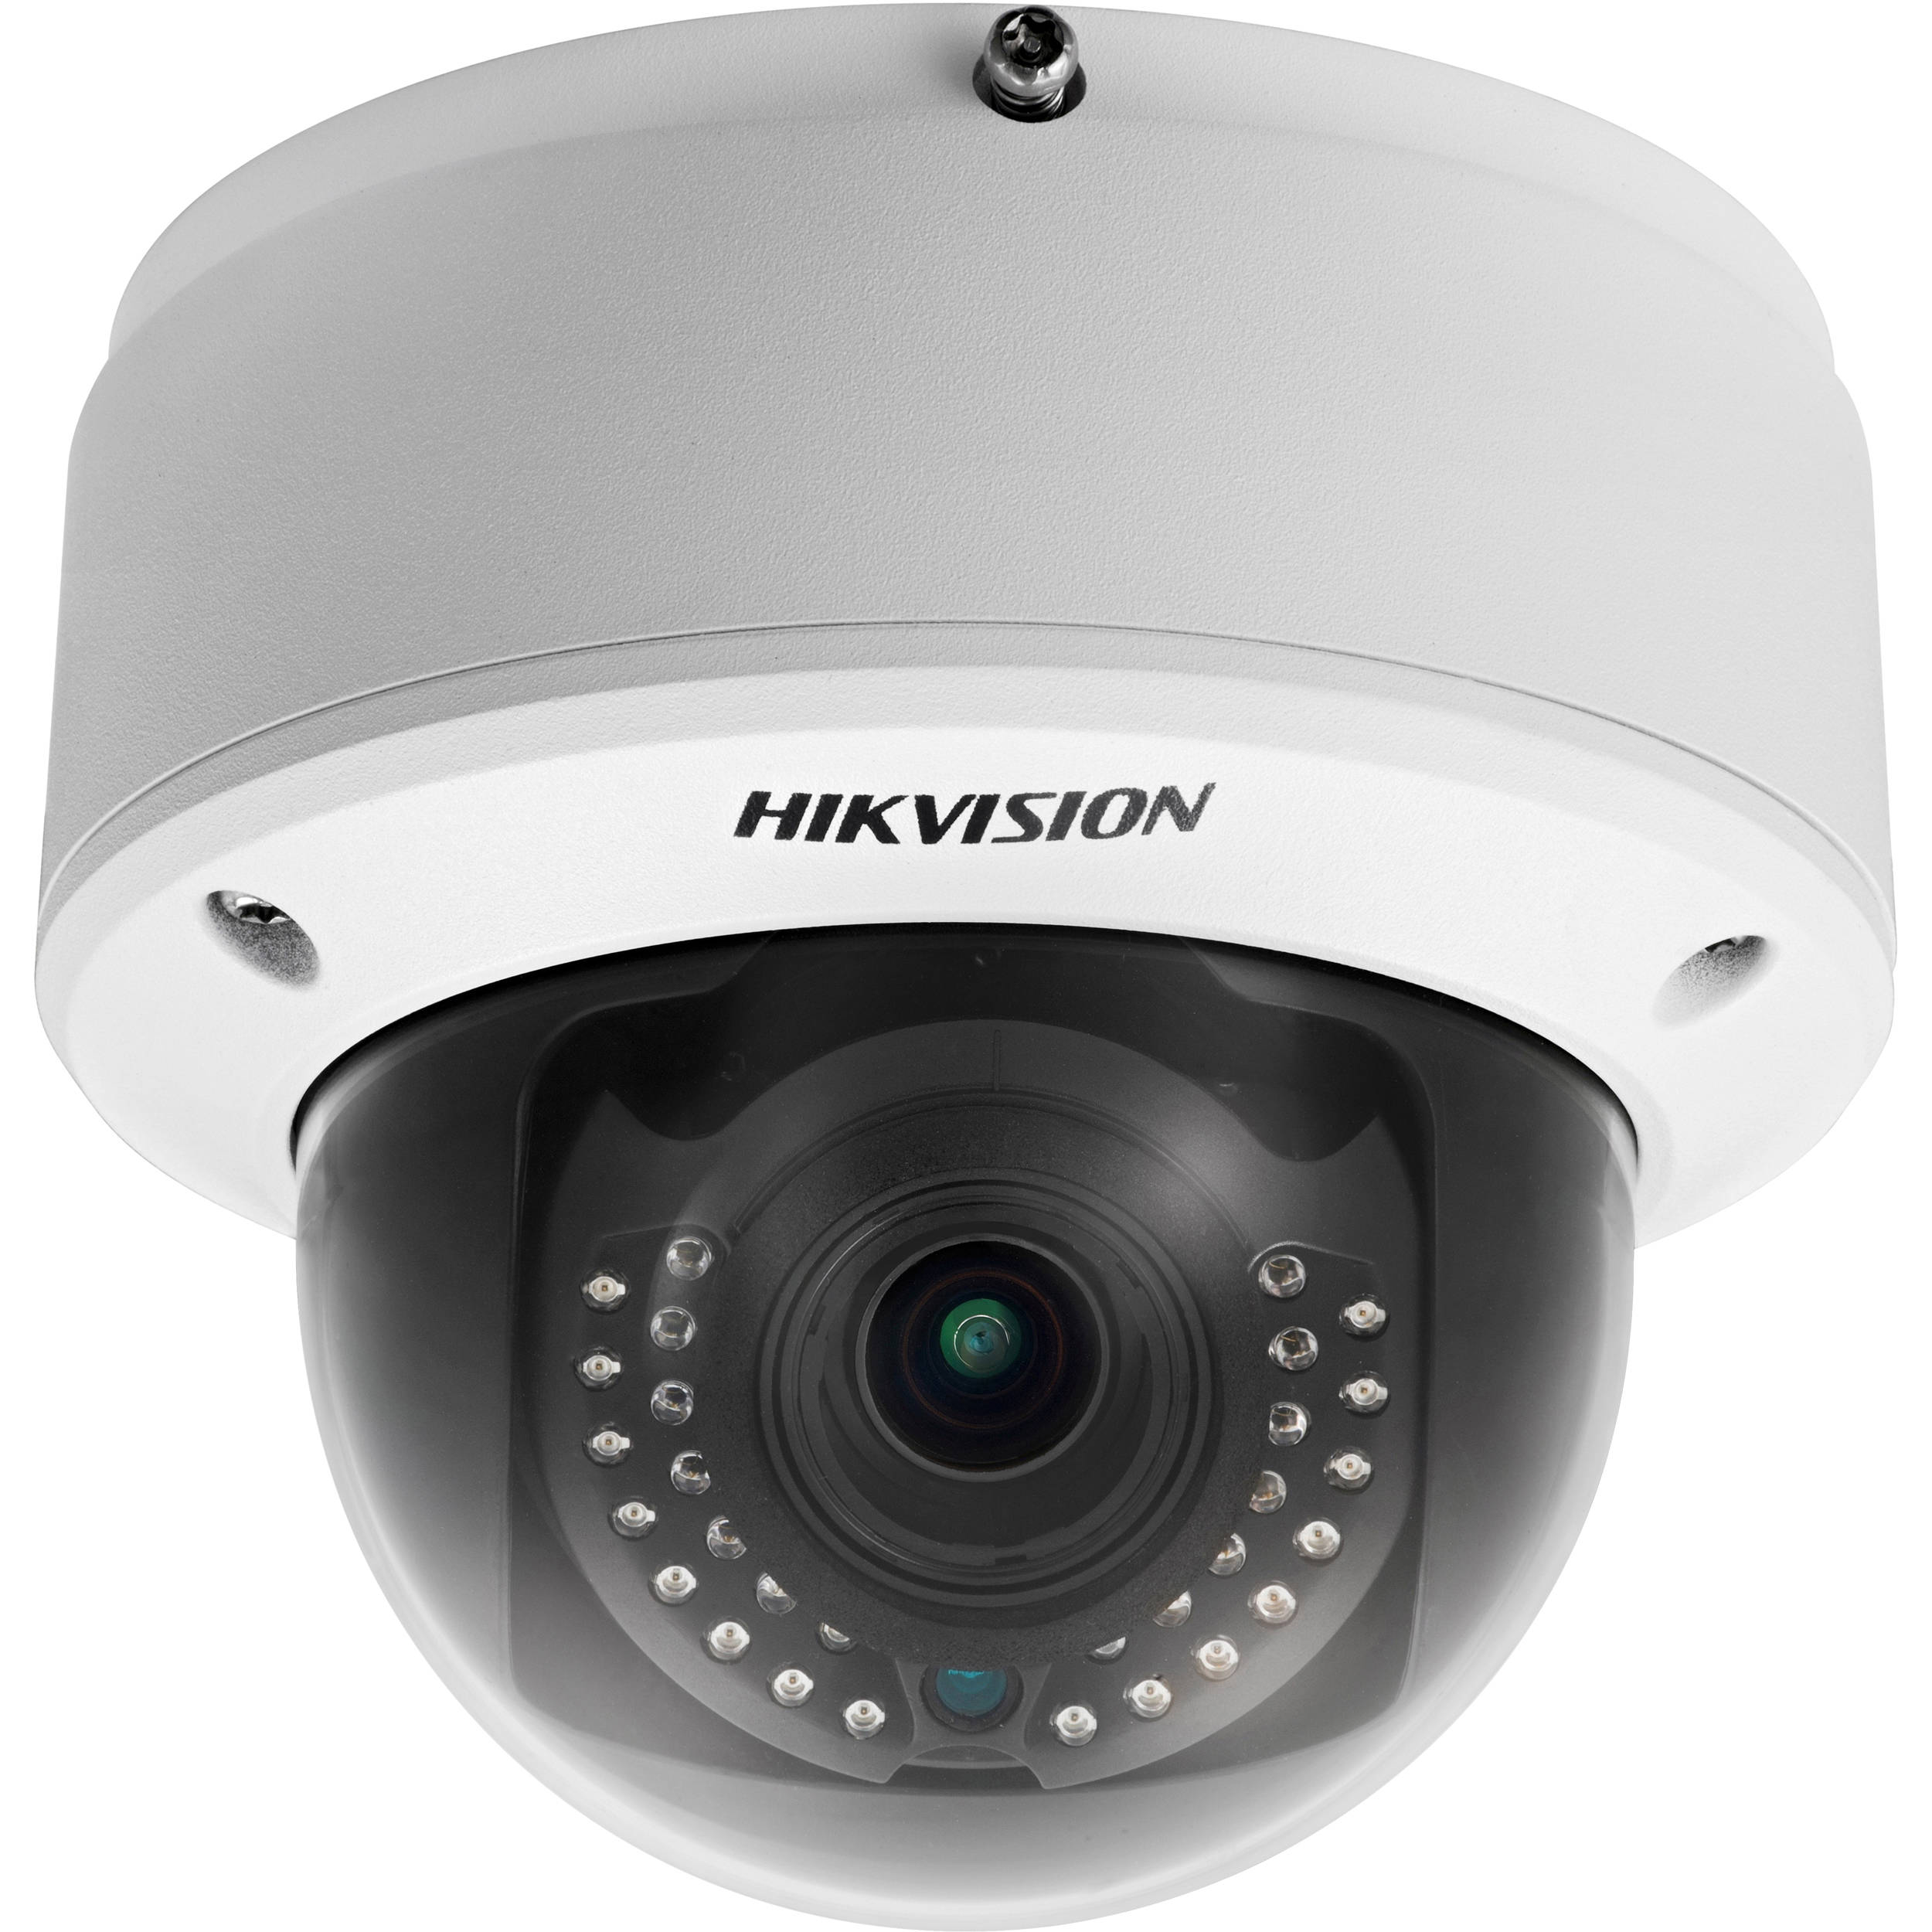 Hikvision Lightfighter Series 2MP Outdoor DS-2CD4125FWD-IZ B&H